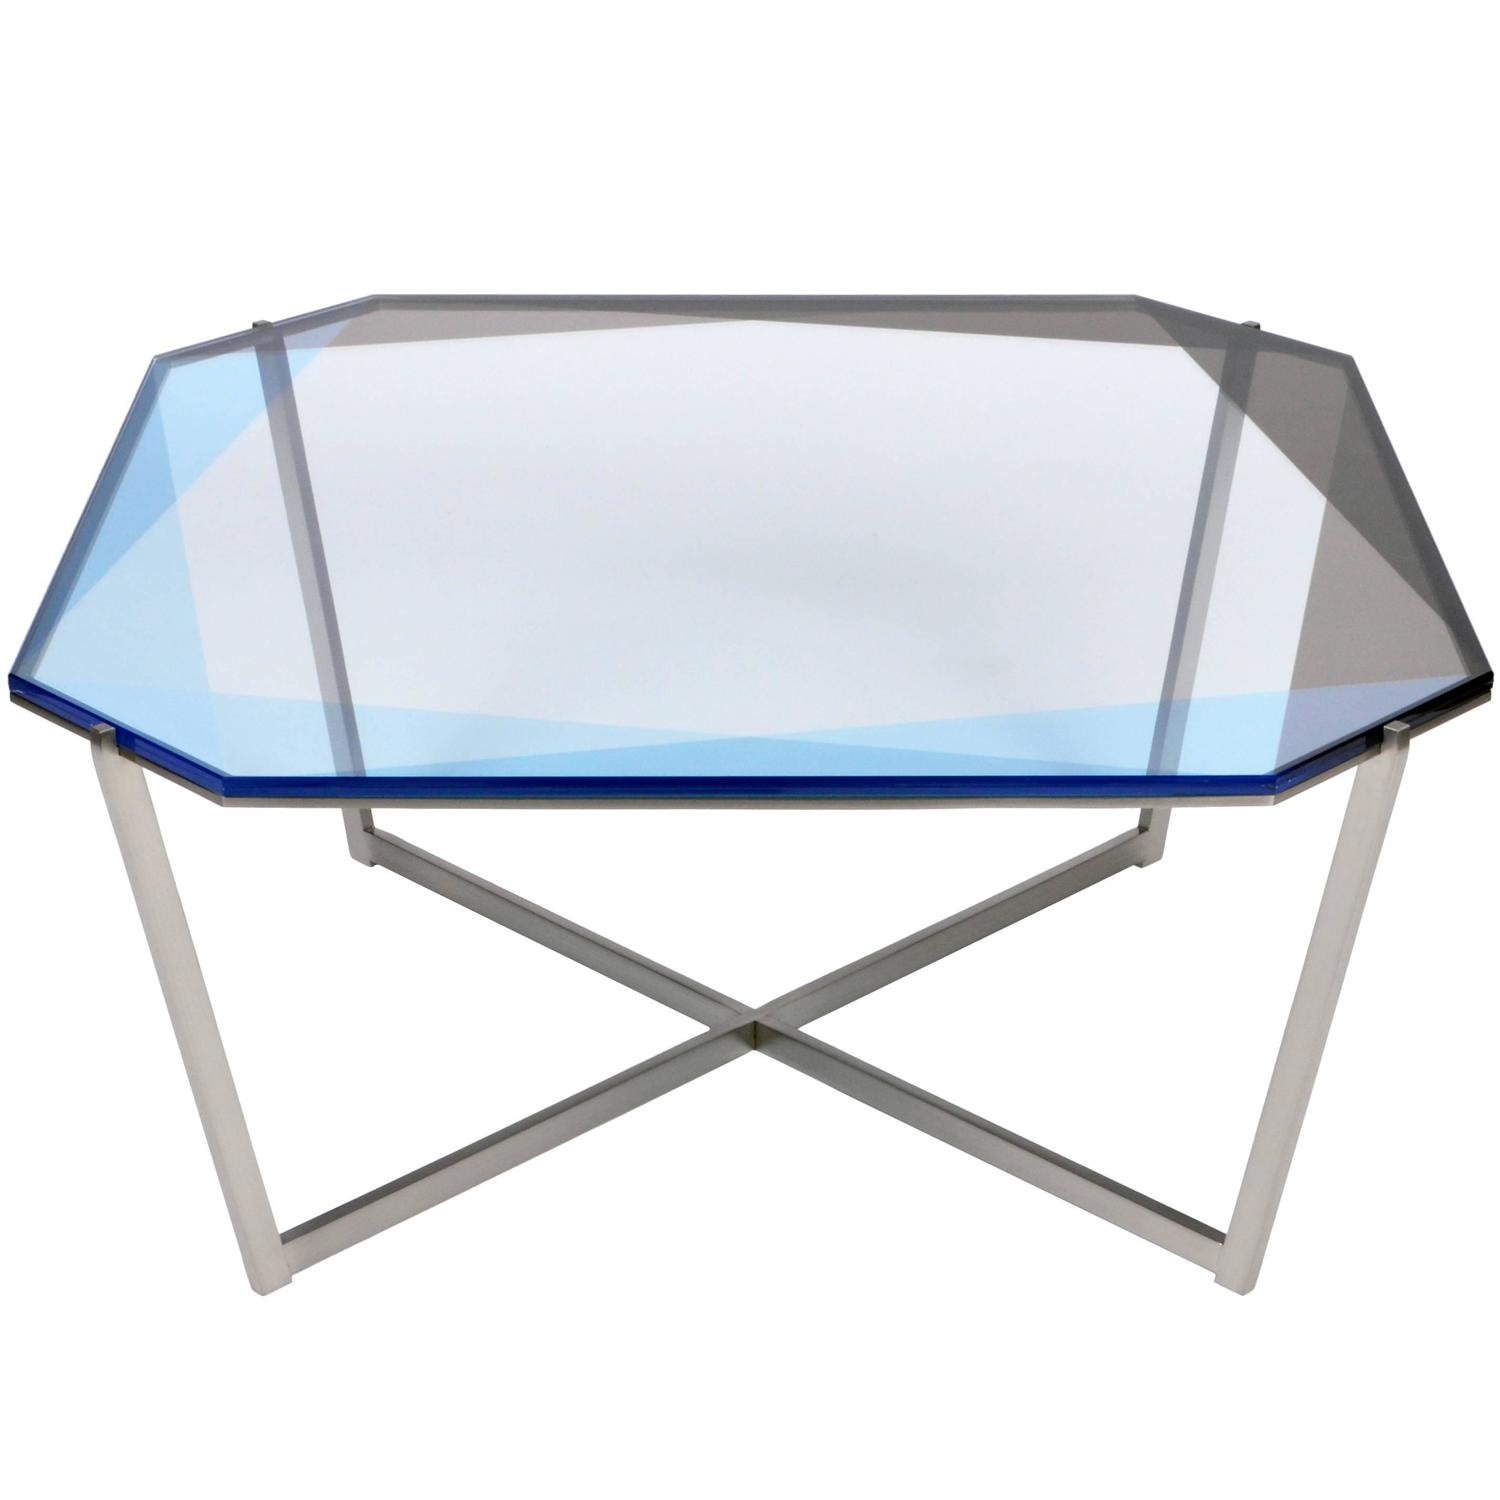 Gem Square Coffee Table Blue Nickel For Sale at 1stdibs